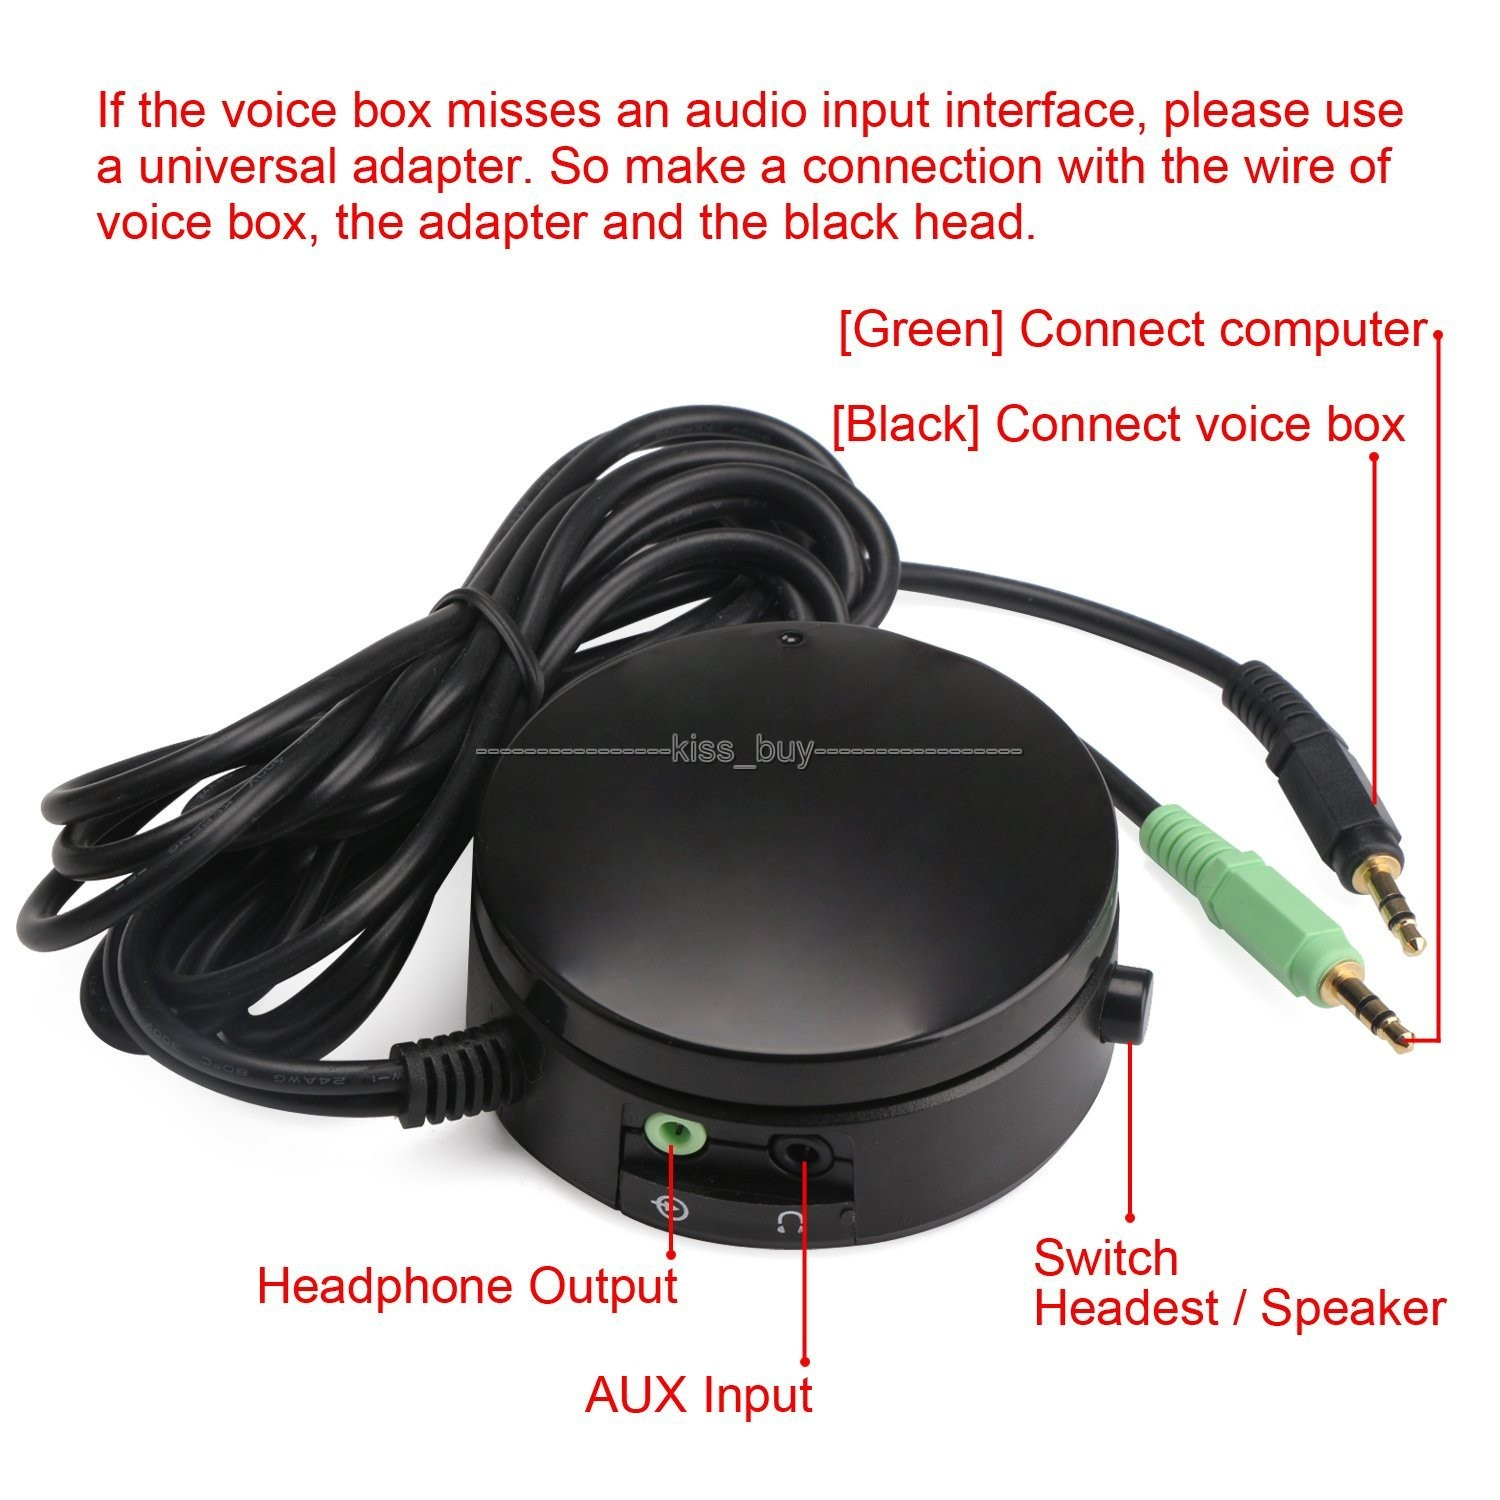 Computer Speakers Headphones Audio Switch Converter Volume Control How To Wire A Switching In Electronics Production Machinery From Electronic Components Supplies On